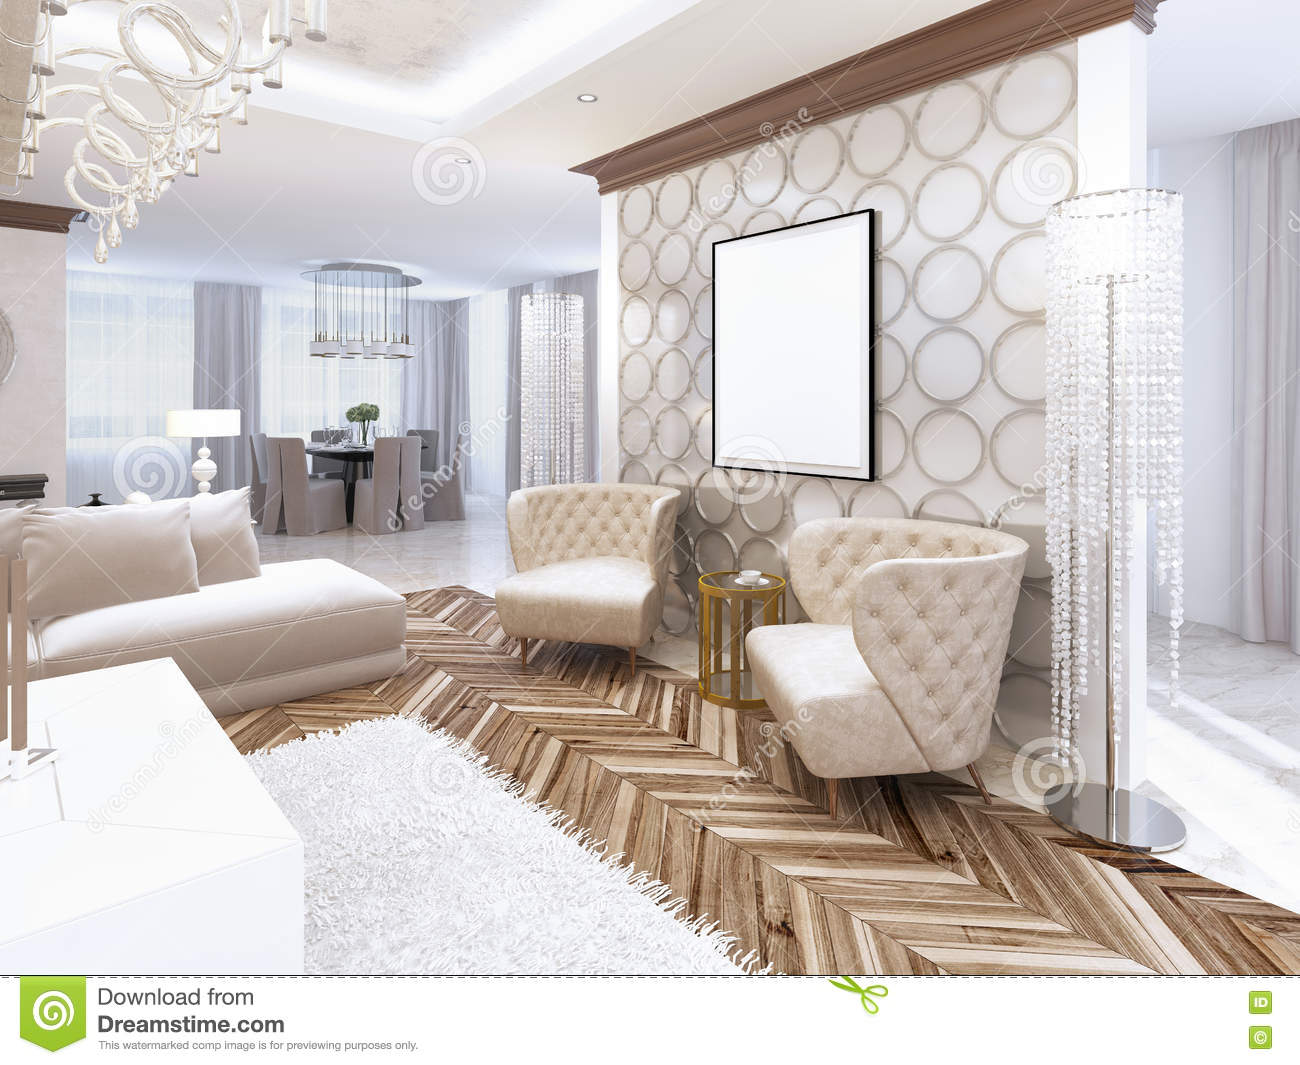 Picture of: Two Designer Leather Armchairs In Living Room Art Deco Stock Illustration Illustration Of Luxury Interior 79502791